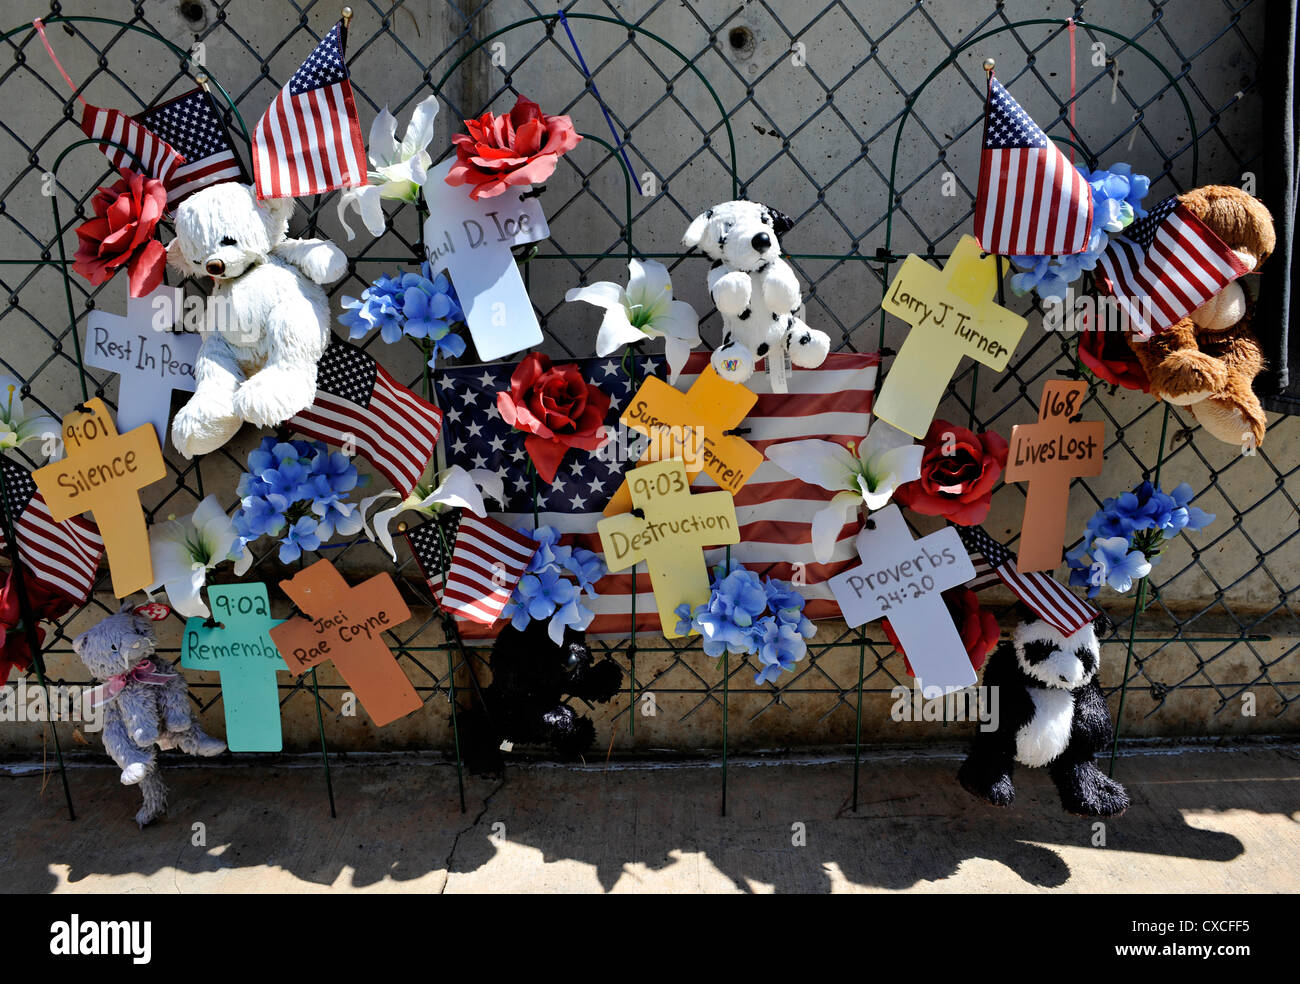 Personal tributes to Oklahoma Bombing victims, on the fence outside the Memorial site Stock Photo